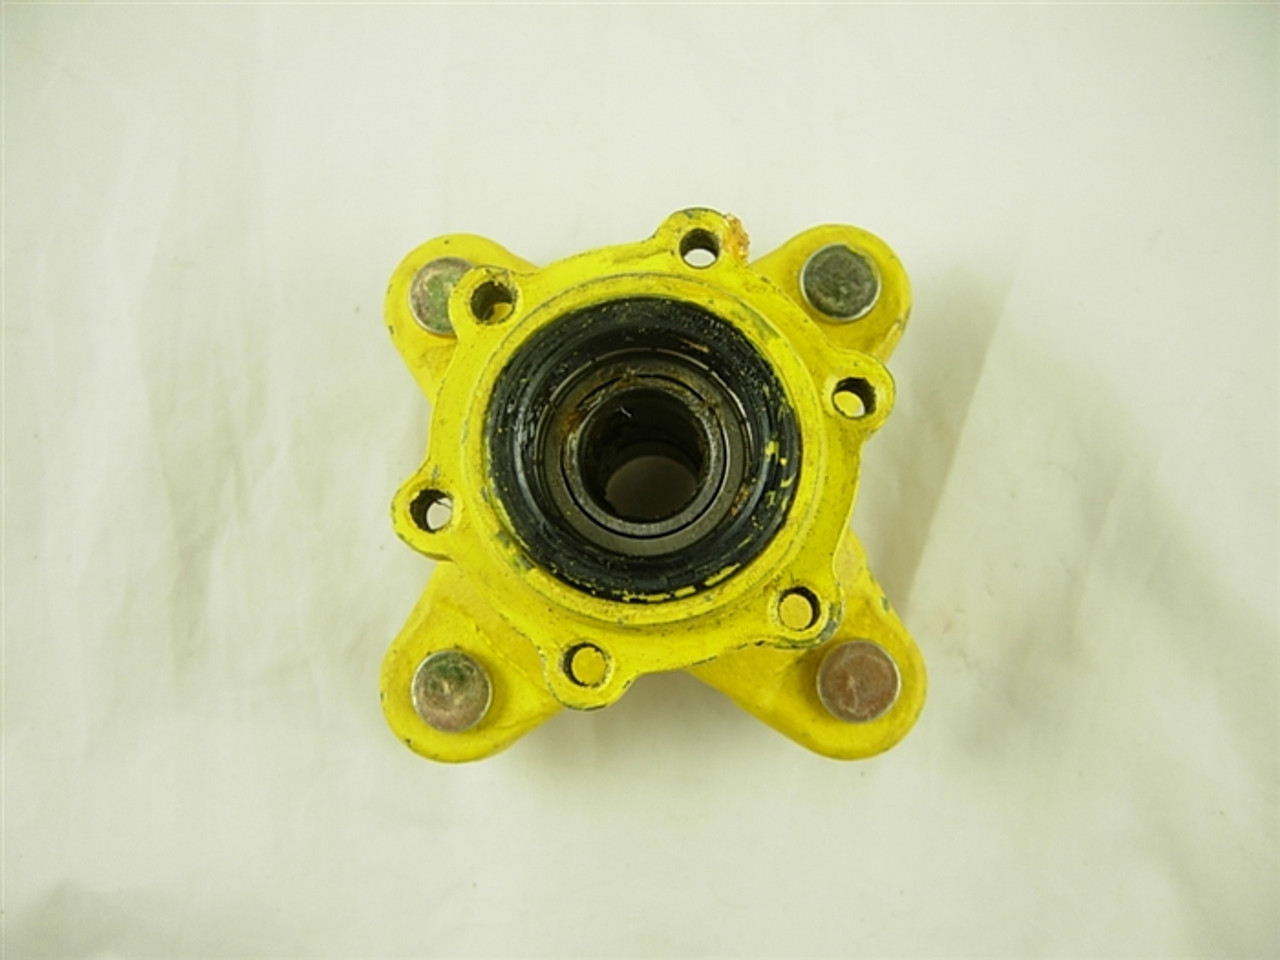 HUB AND BEARING ASSEMBLY 10931-A52-13